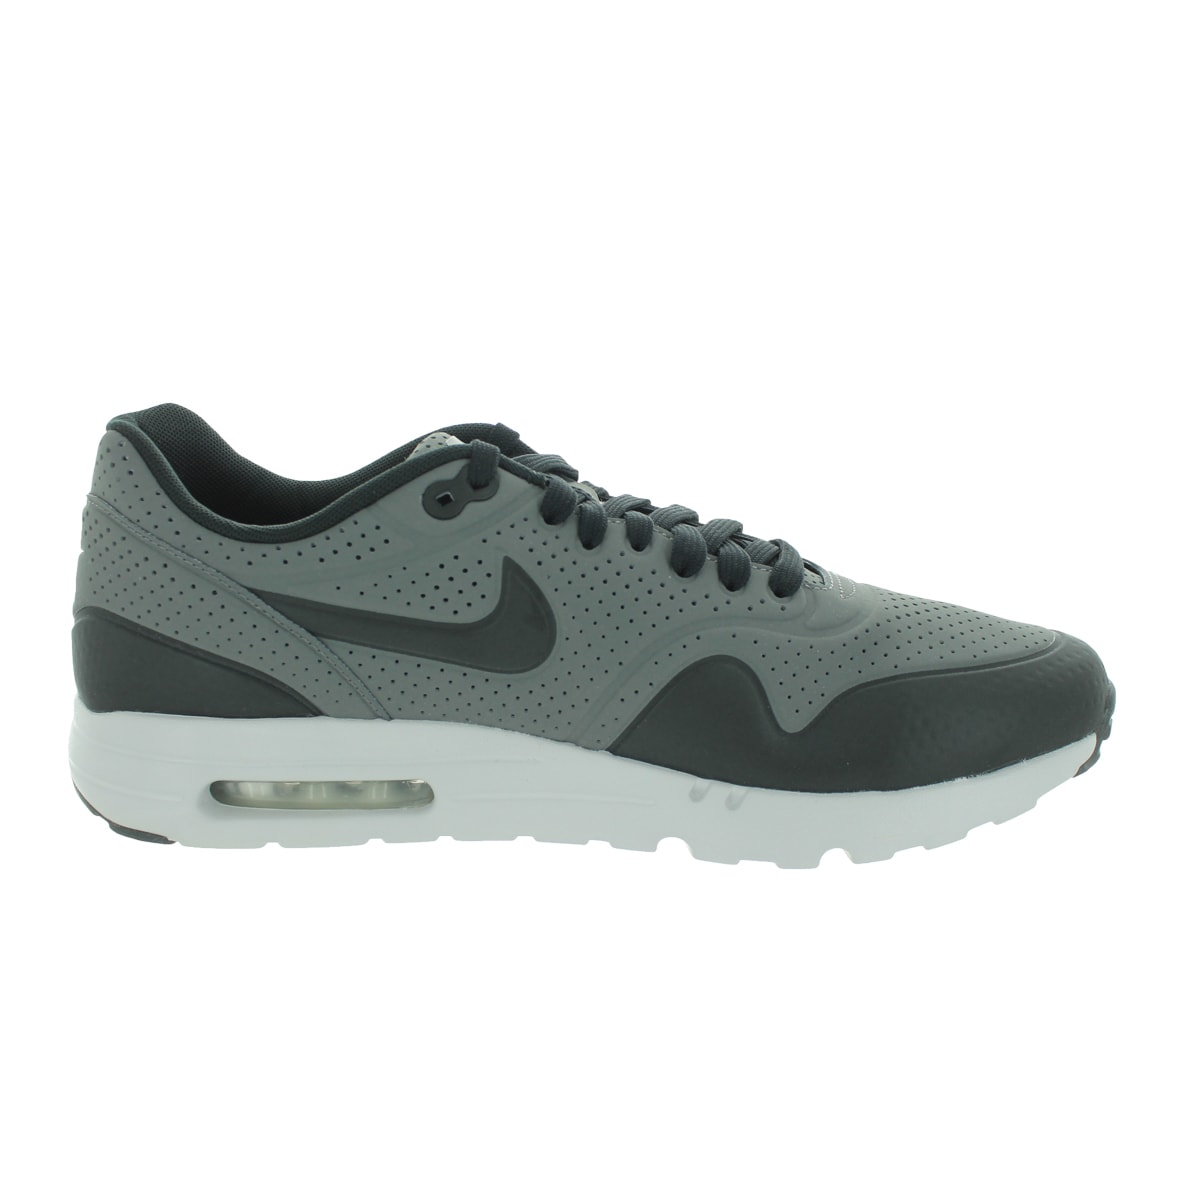 sports shoes e1606 093ec Shop Nike Men s Air Max 1 Ultra Moire Dark Grey Black Flt Silver Running  Shoe - Free Shipping Today - Overstock.com - 12329148